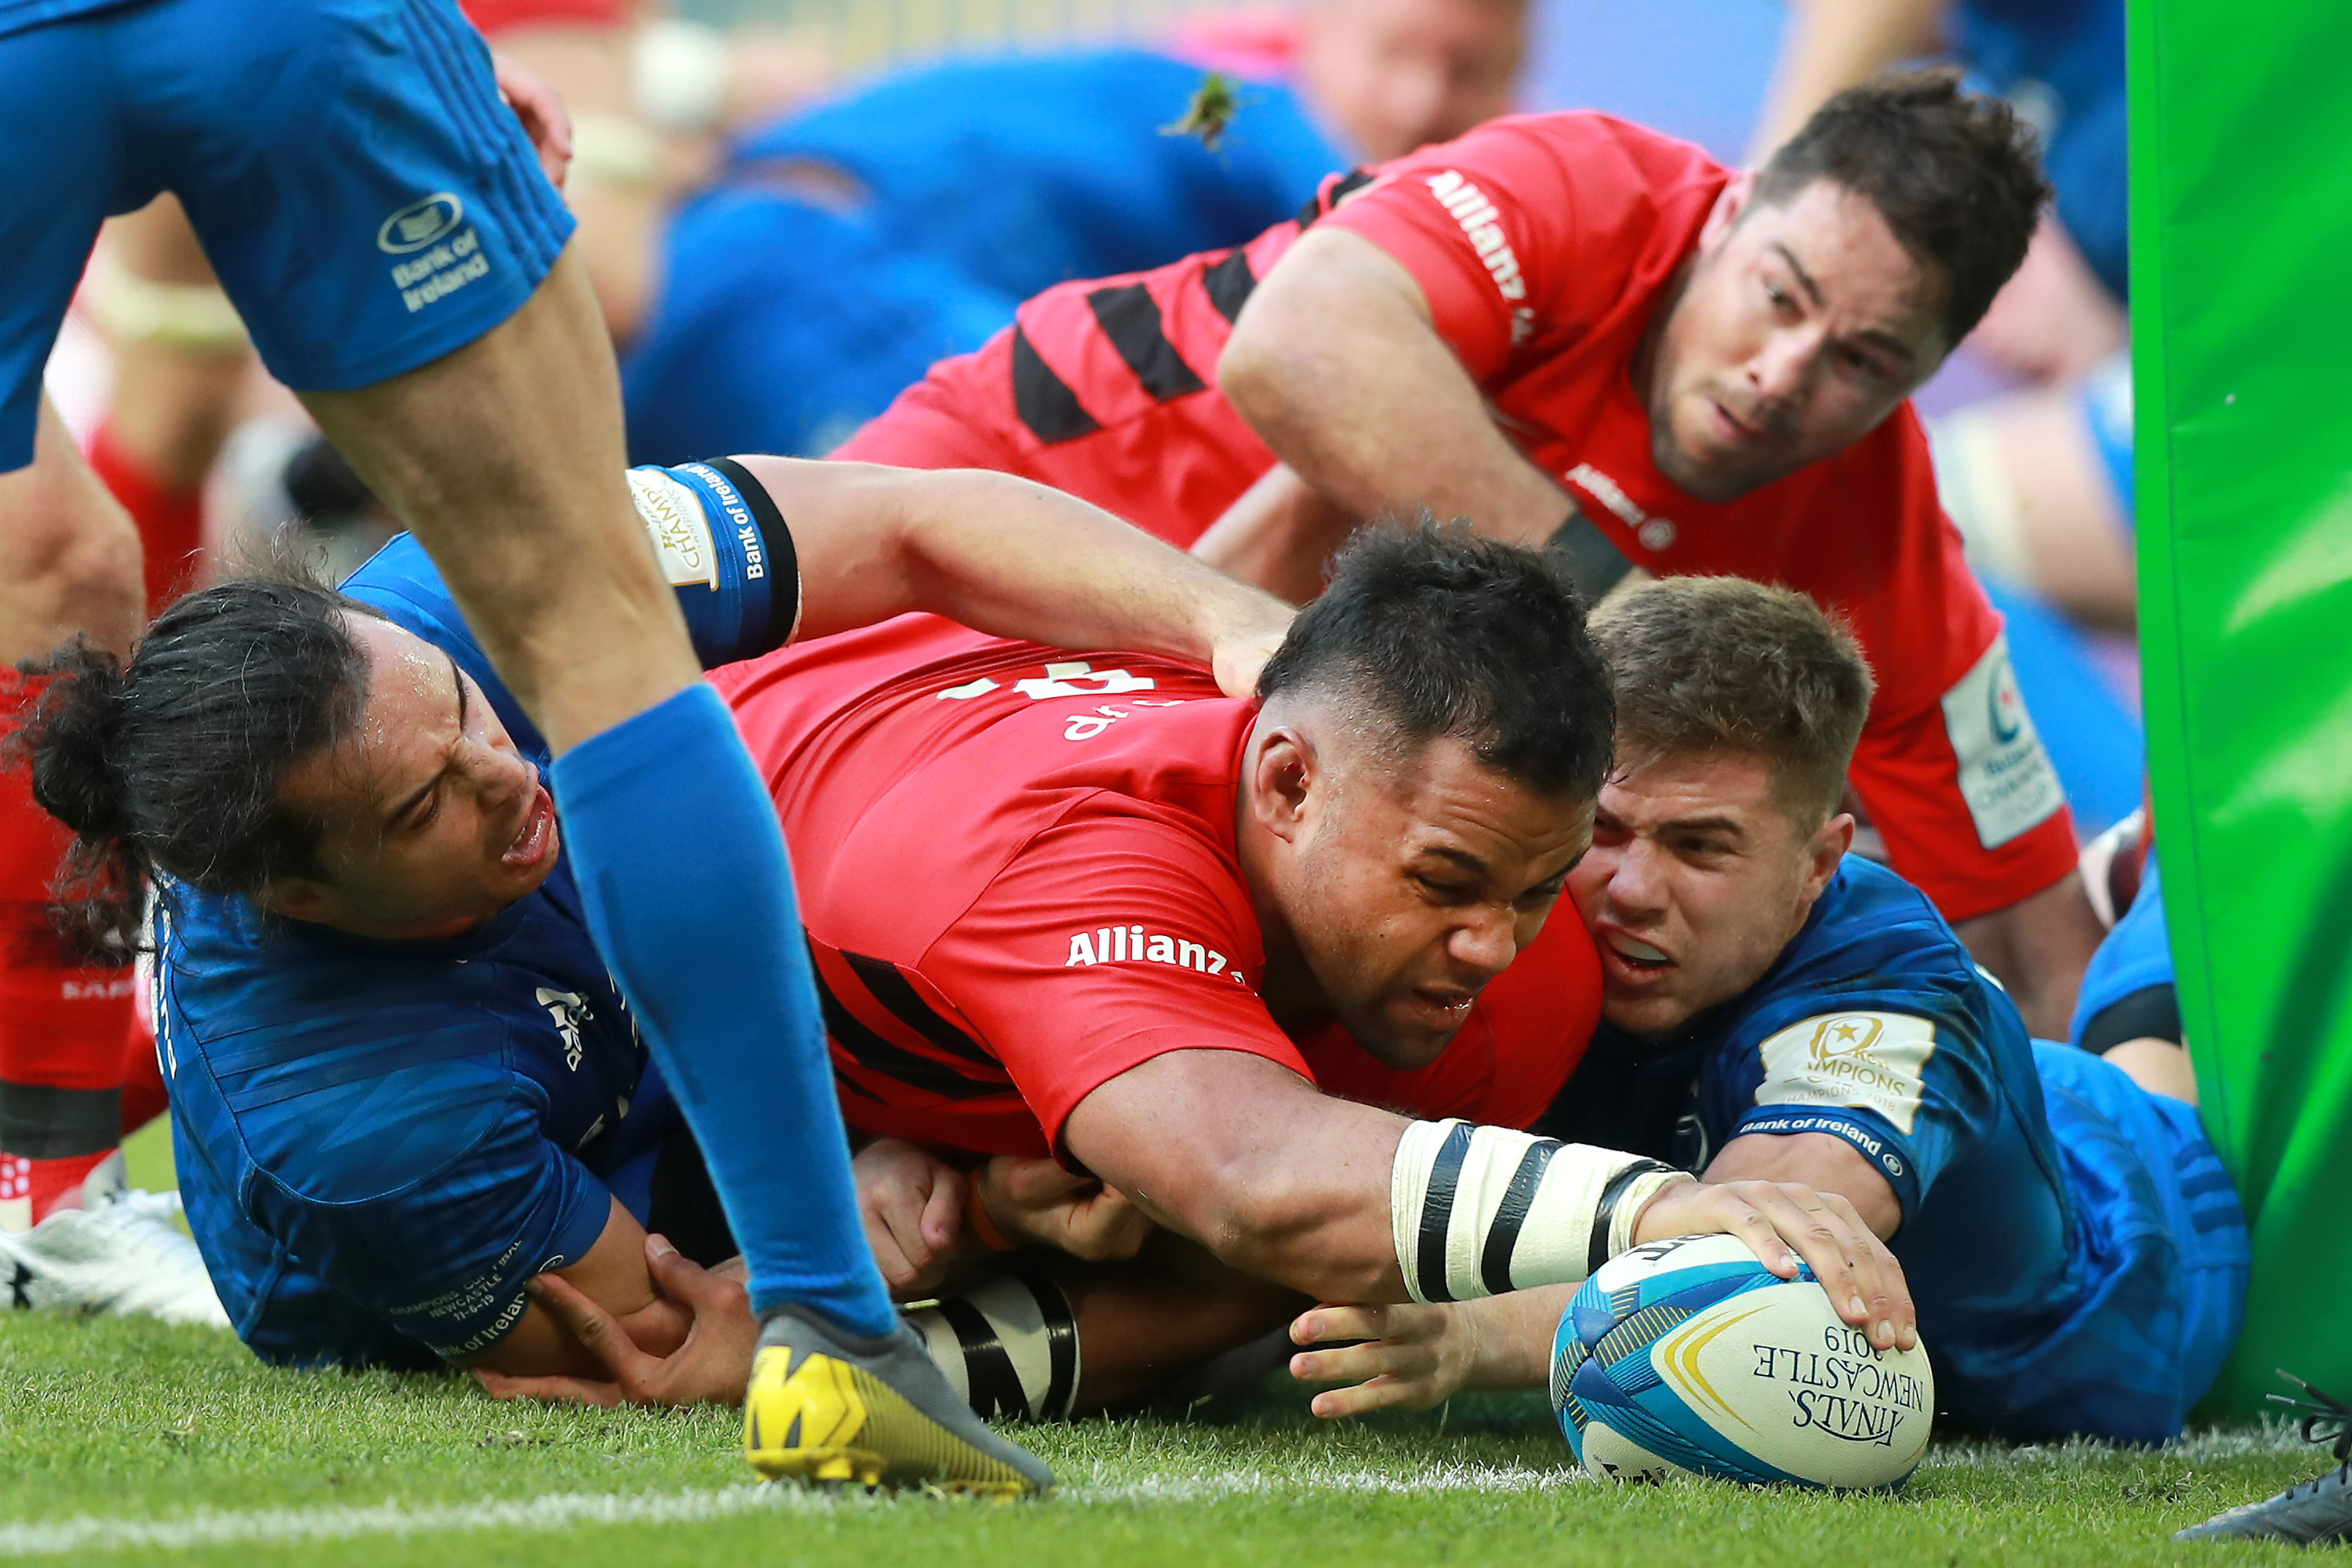 Billy Vunipola of Saracens touches down to score his team's second try during the Champions Cup Final match between Saracens and Leinster at St. James Park on May 11, 2019 in Newcastle upon Tyne, United Kingdom.